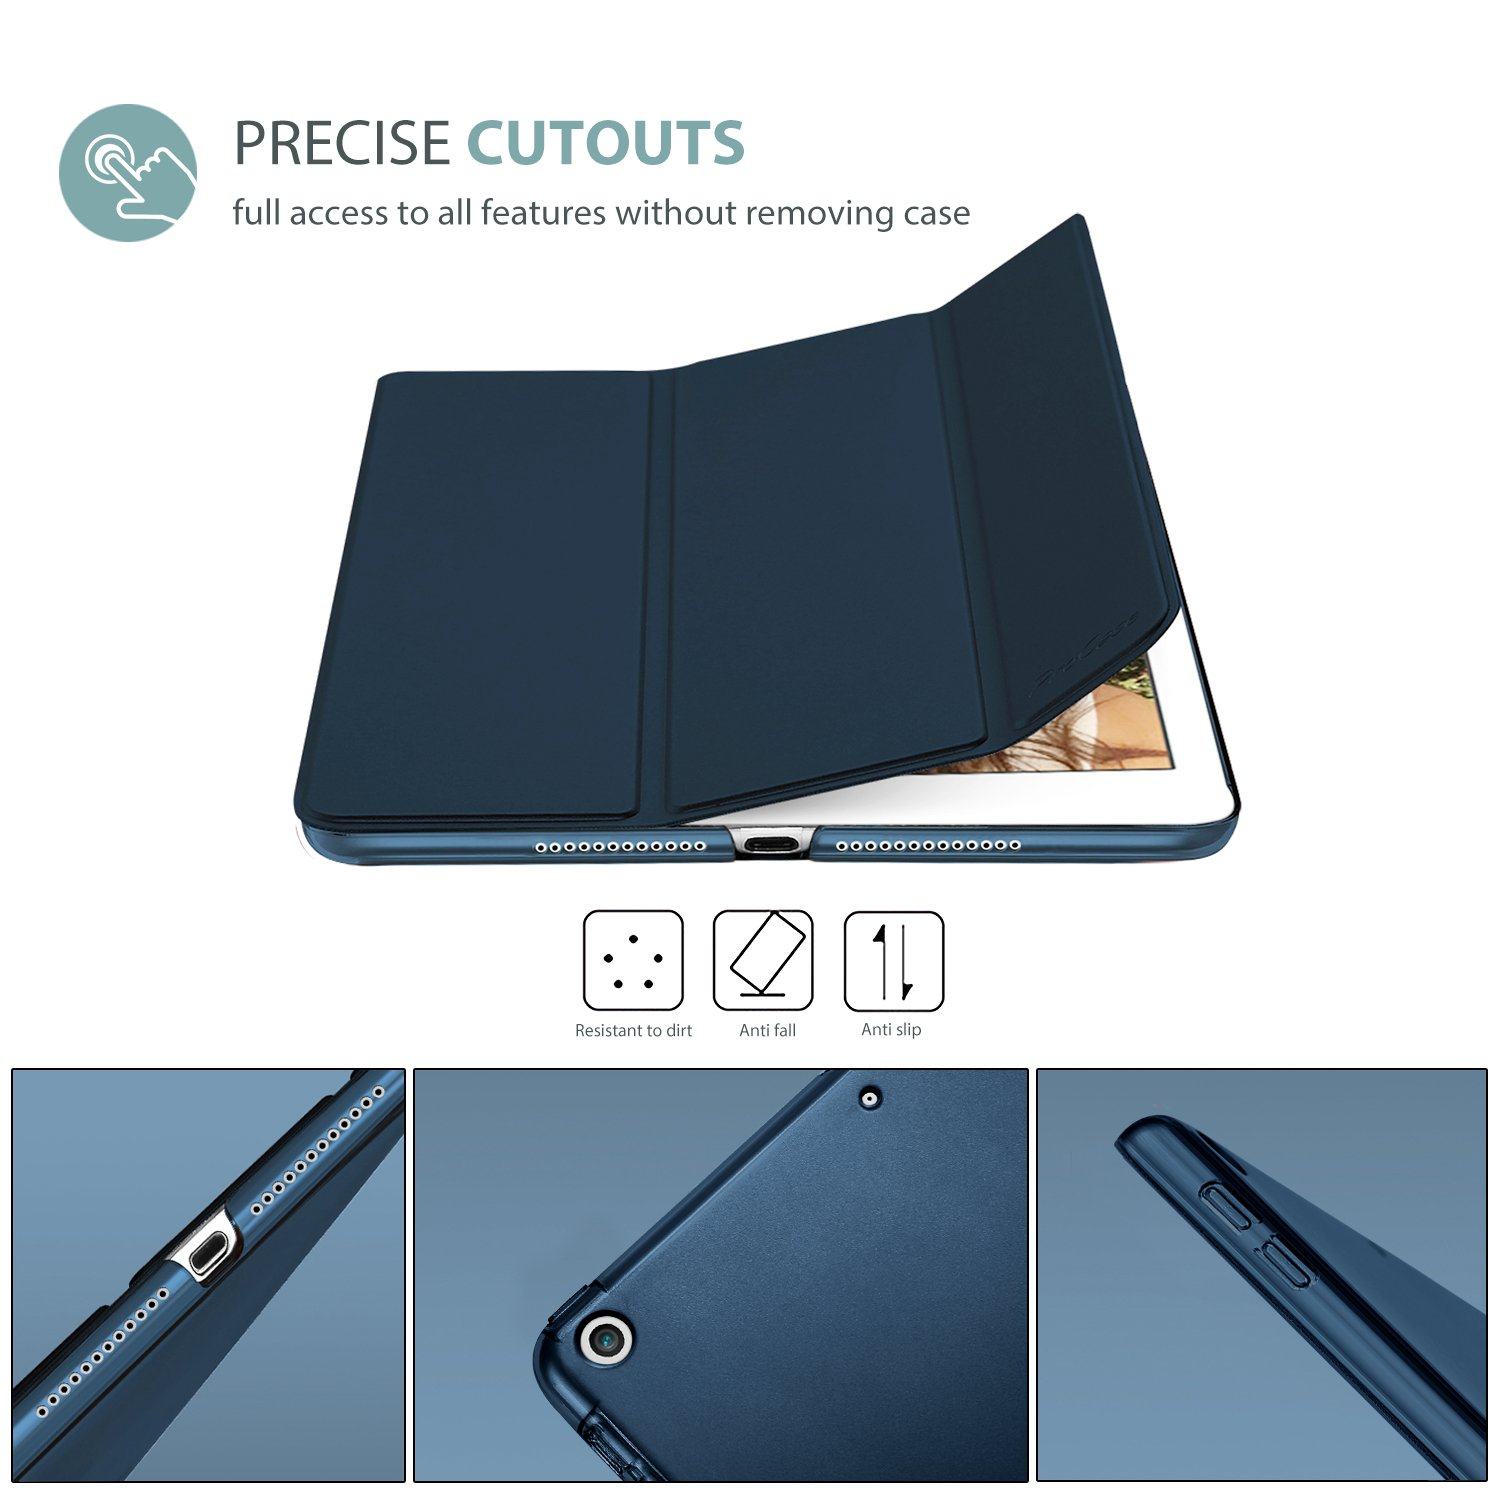 ProCase iPad 9.7 Case 2018 iPad 6th Generation Case / 2017 iPad 5th Generation Case - Ultra Slim Lightweight Stand Case with Translucent Frosted Back Smart Cover for Apple iPad 9.7 Inch -Navy Blue by ProCase (Image #2)